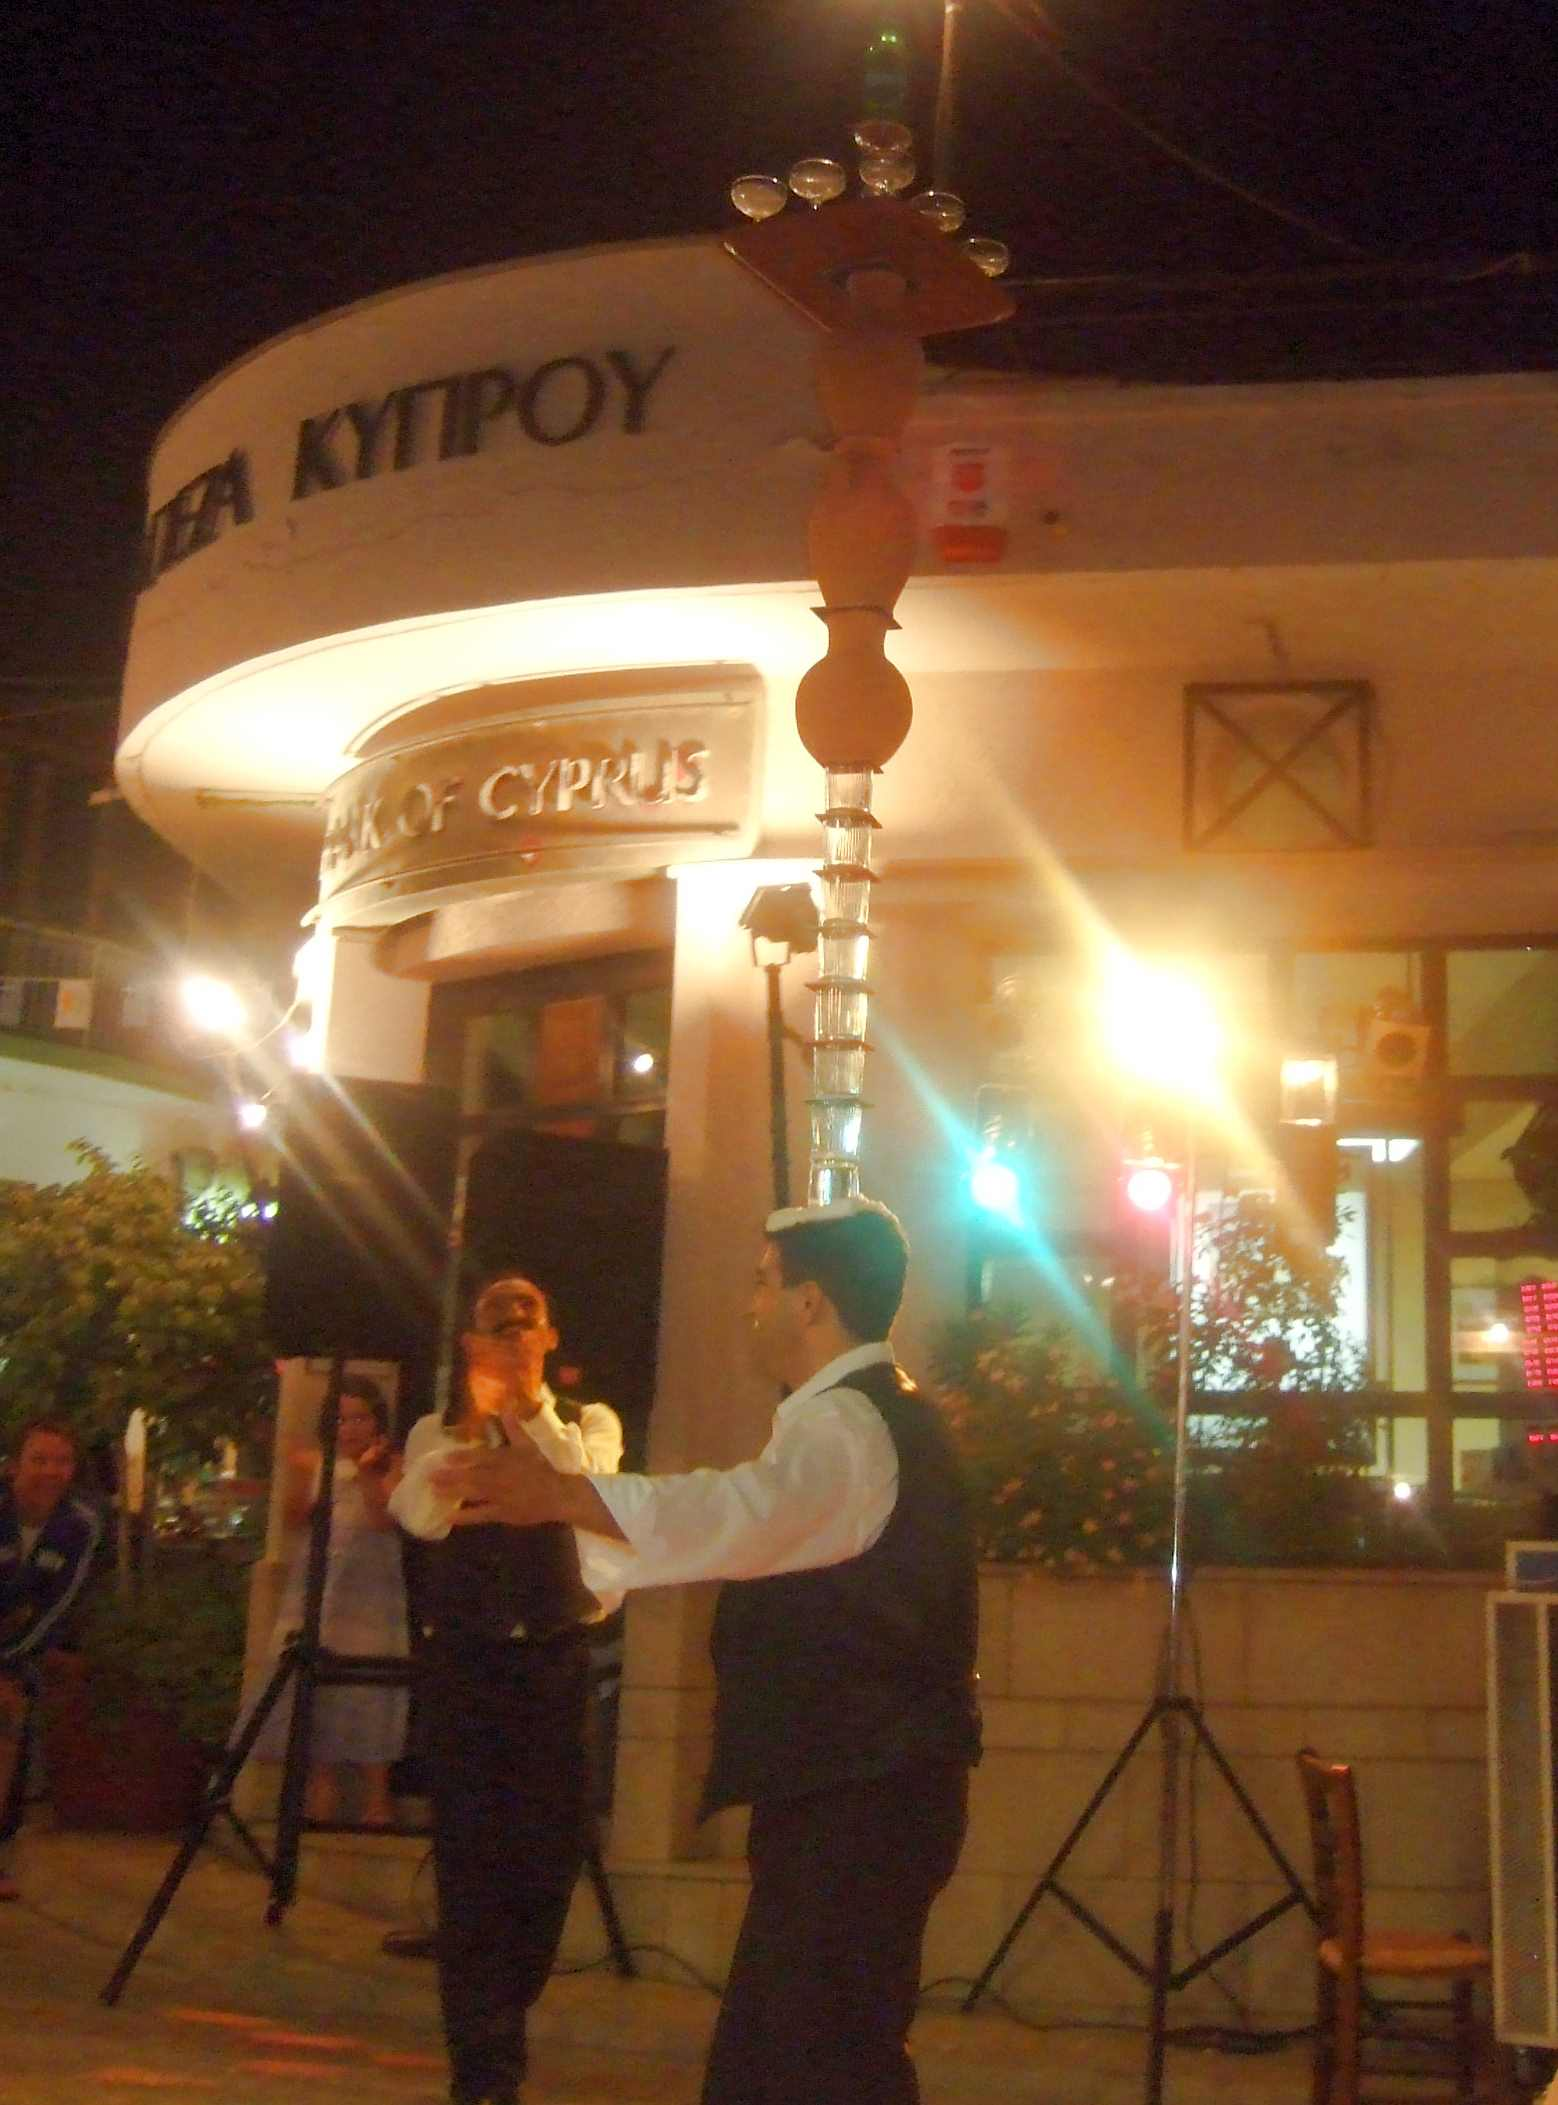 cyprus night and sex but it is not asian sex tampa. Perhaps some people are confused ...